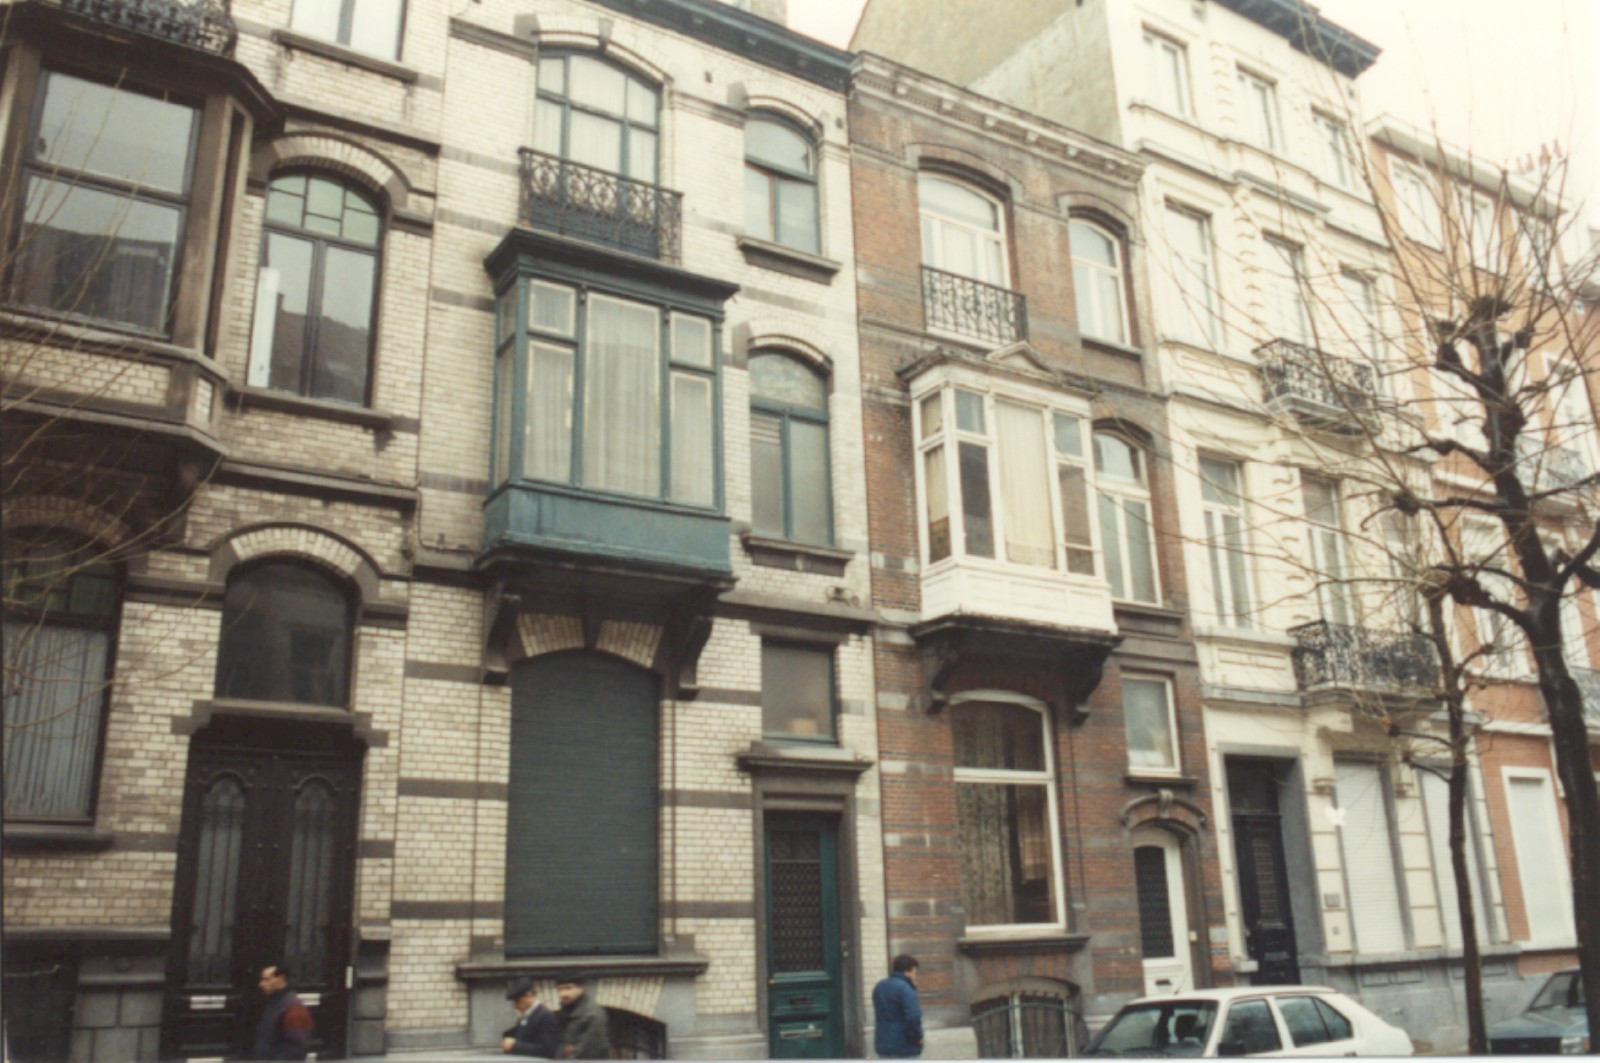 Rue Potagère 161 et 163 (photo 1993-1995).